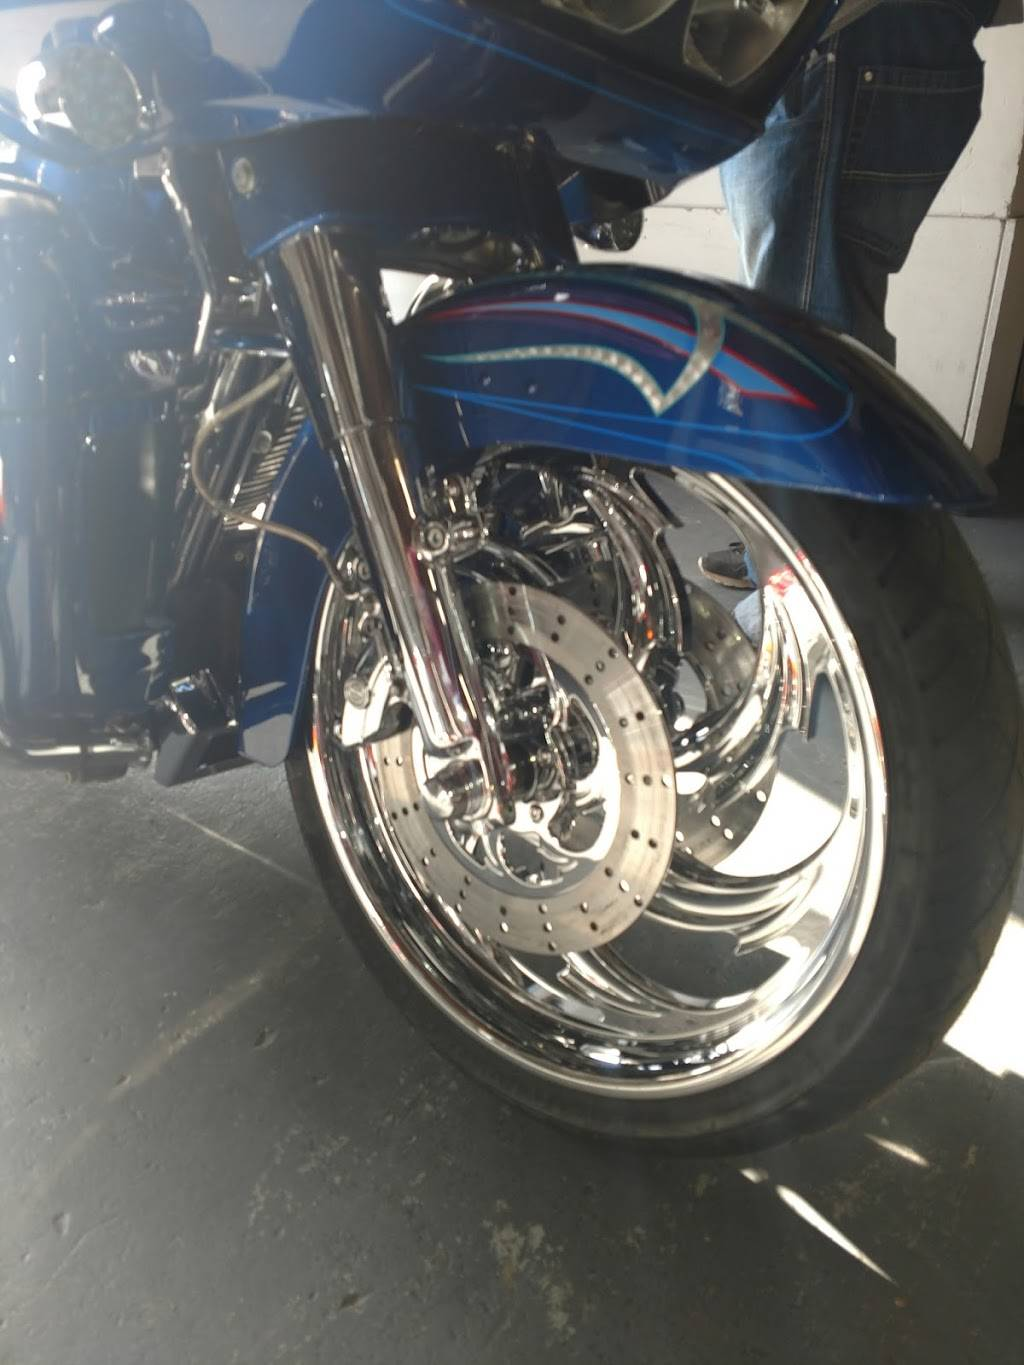 Motorcycle Towing & 24 Hr Services - car repair  | Photo 5 of 7 | Address: 837 E Princeton Ave, Fresno, CA 93704, USA | Phone: (559) 916-7071